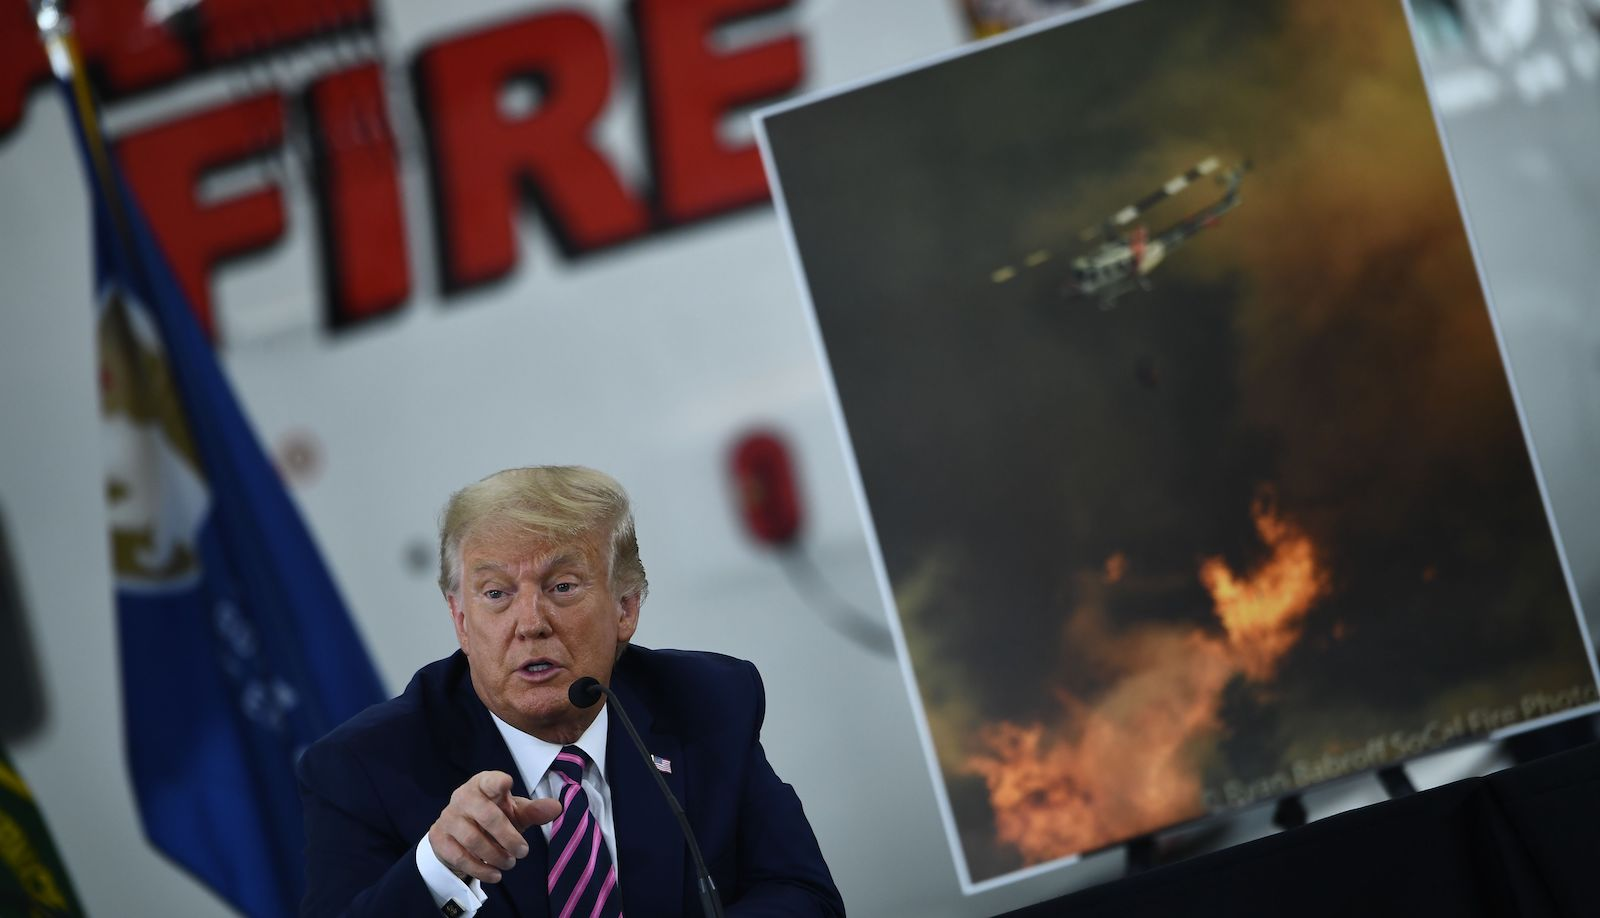 'Probably like 50-50': Trump privately admitted climate change fueled California's fires